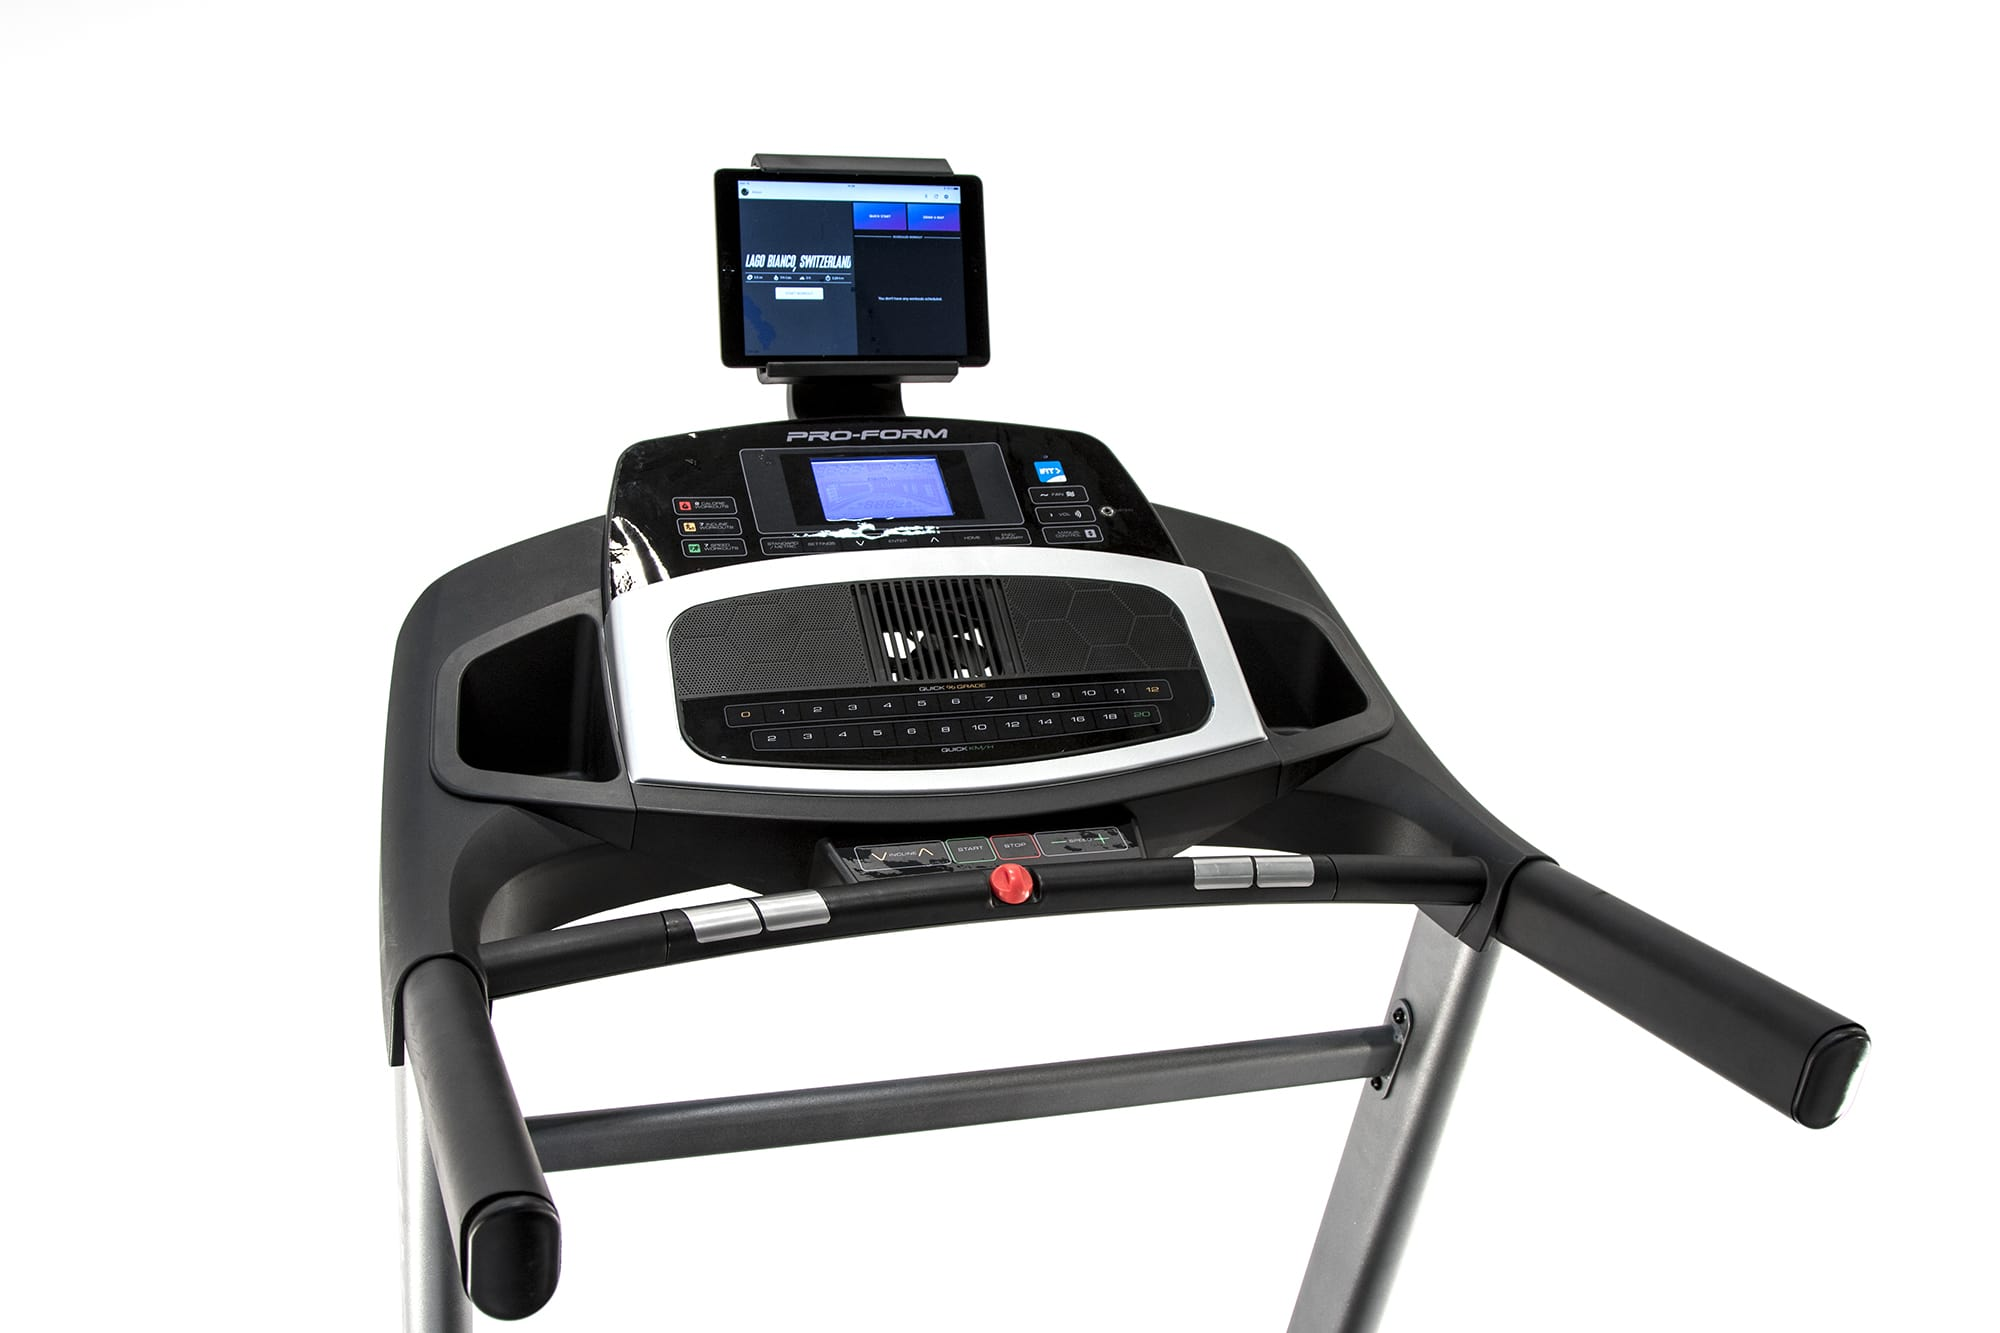 Proform Treadmills Power 795i  gallery image 3